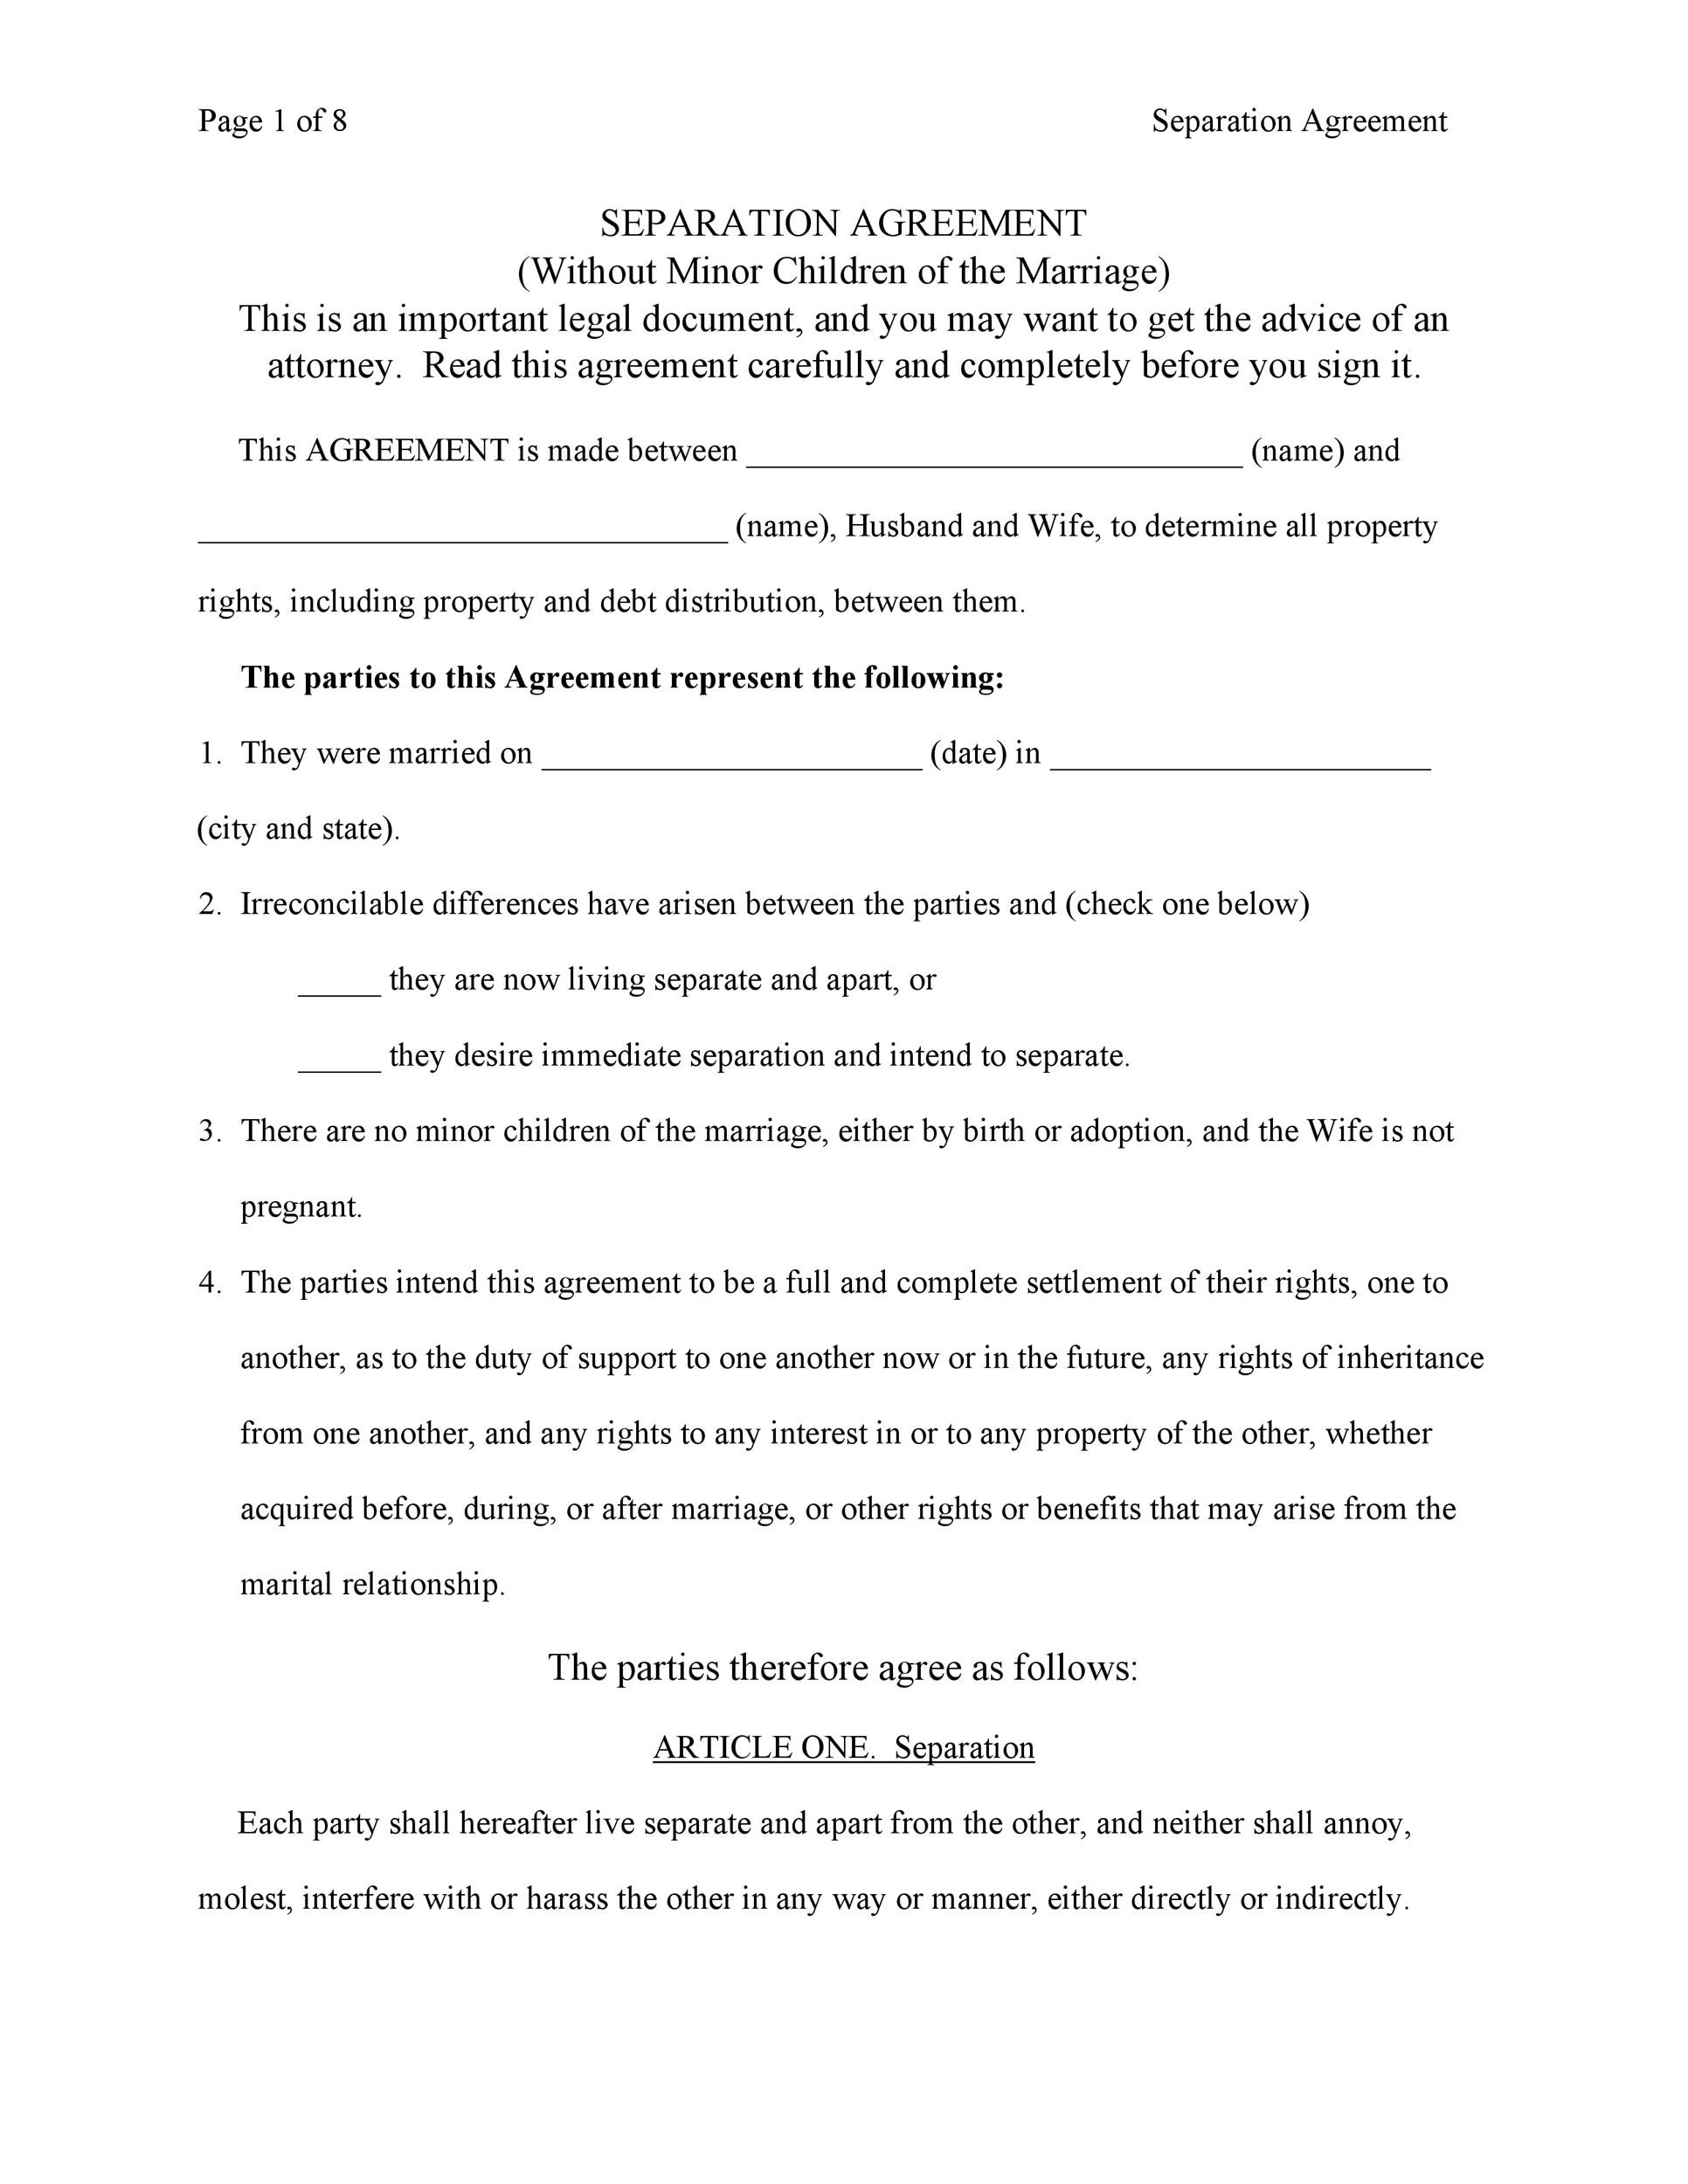 Free Separation Agreement Template 30